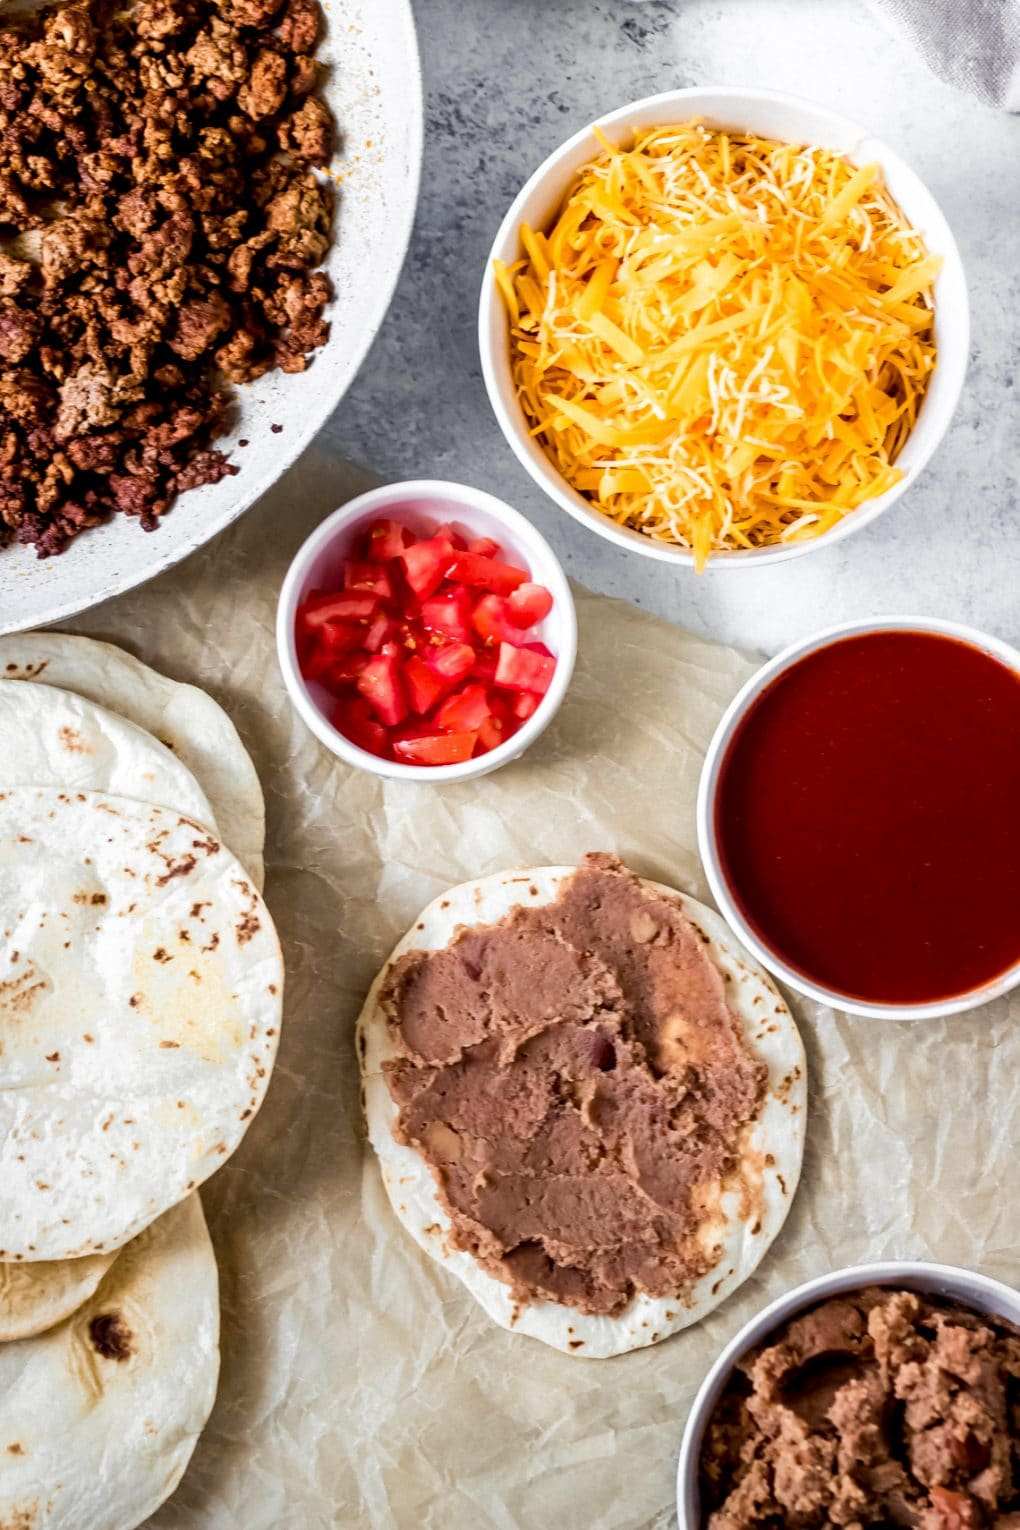 ingredients to make air fryer Mexican pizzas on a table